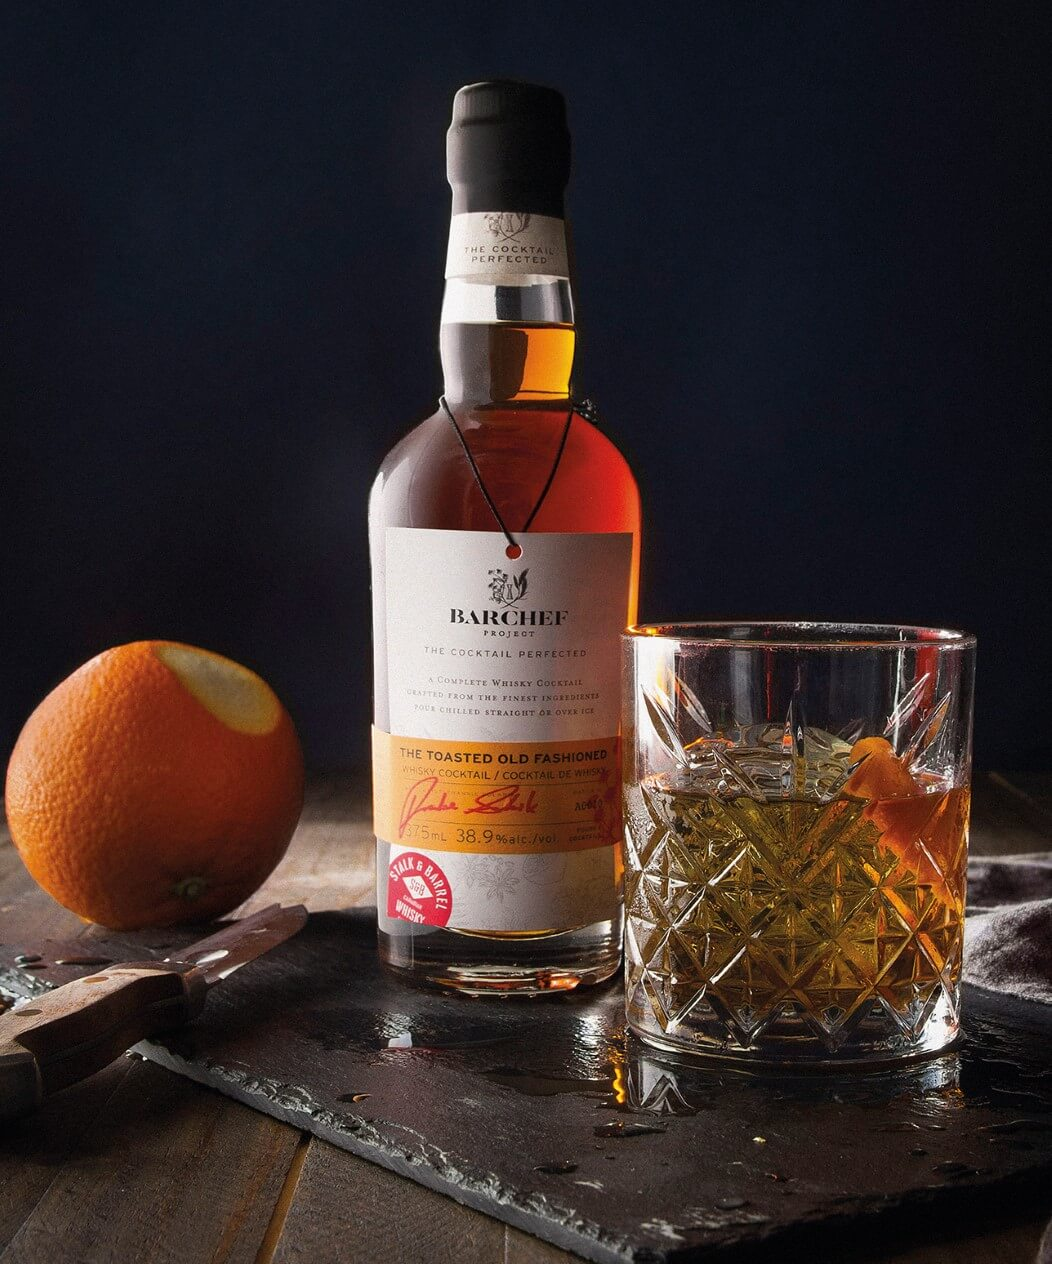 The BarChef Old Fashioned served over ice